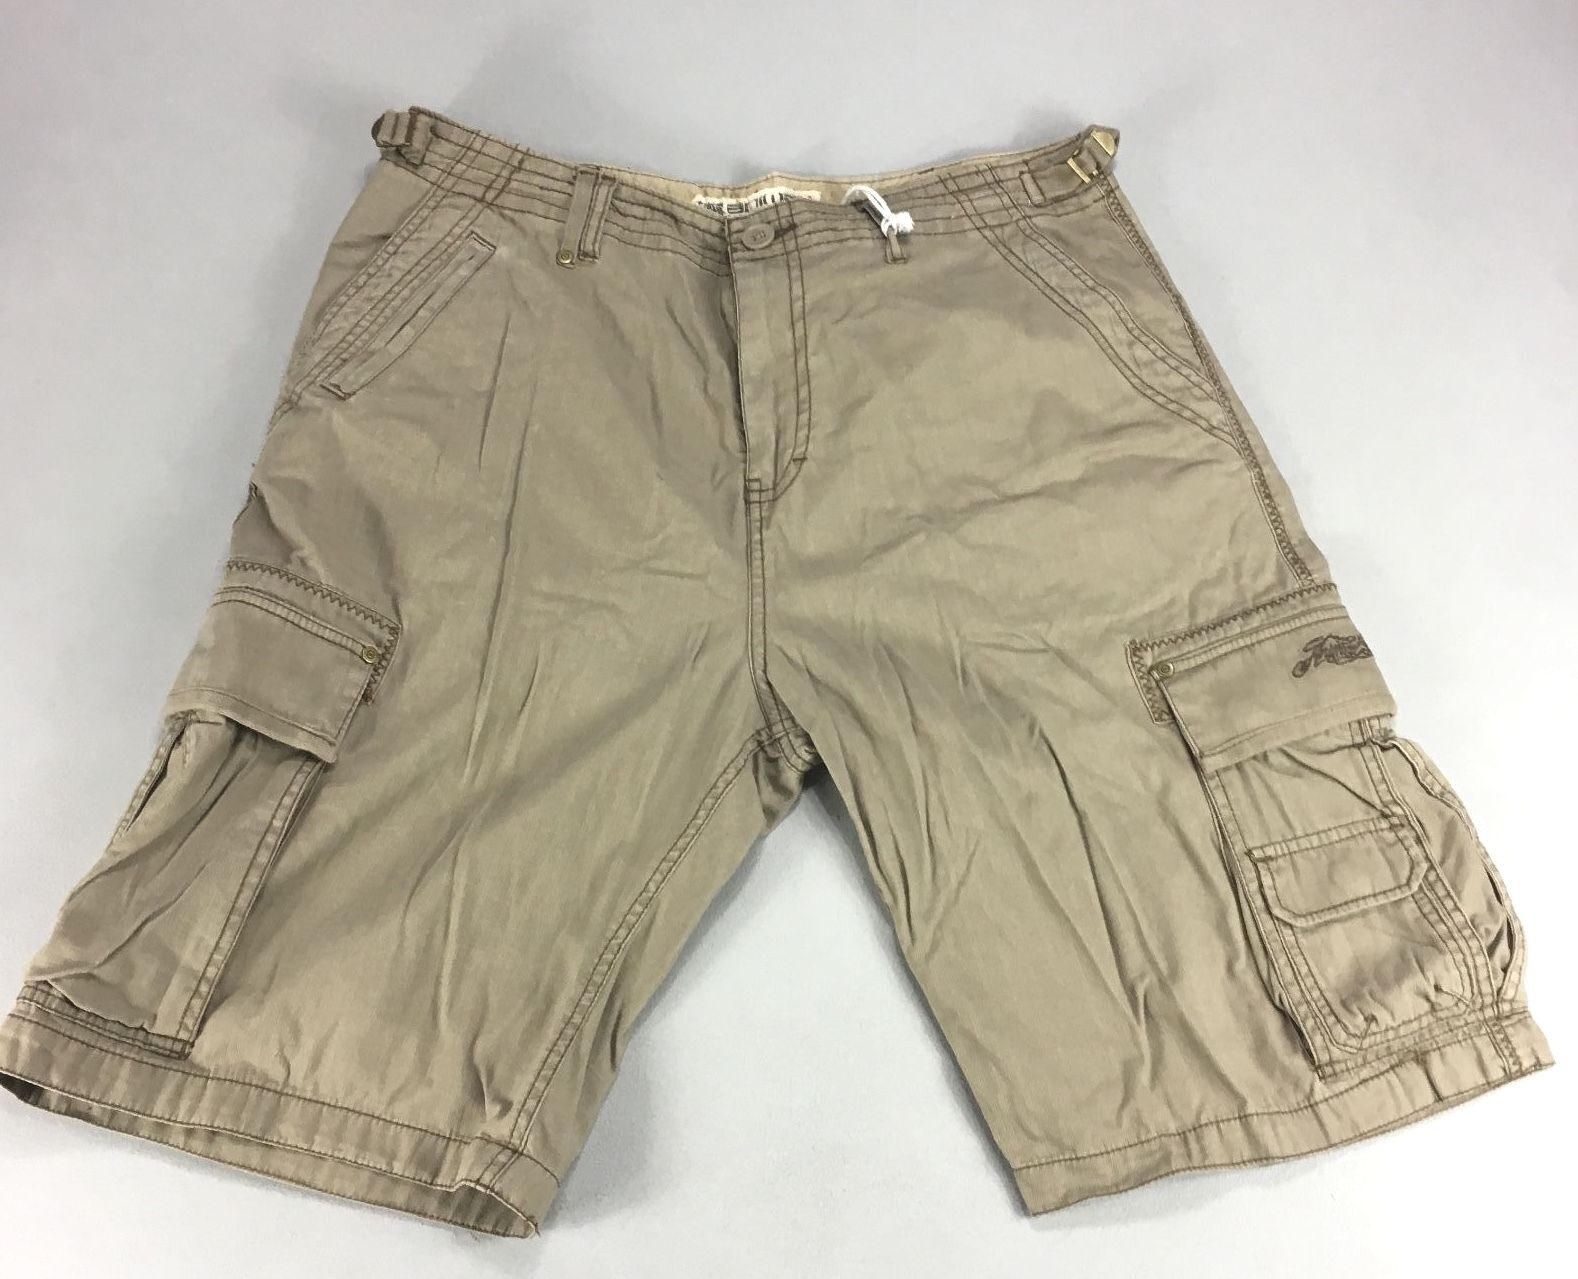 Animal Heavy Wash Cargo Shorts Brand new in box in Size 30